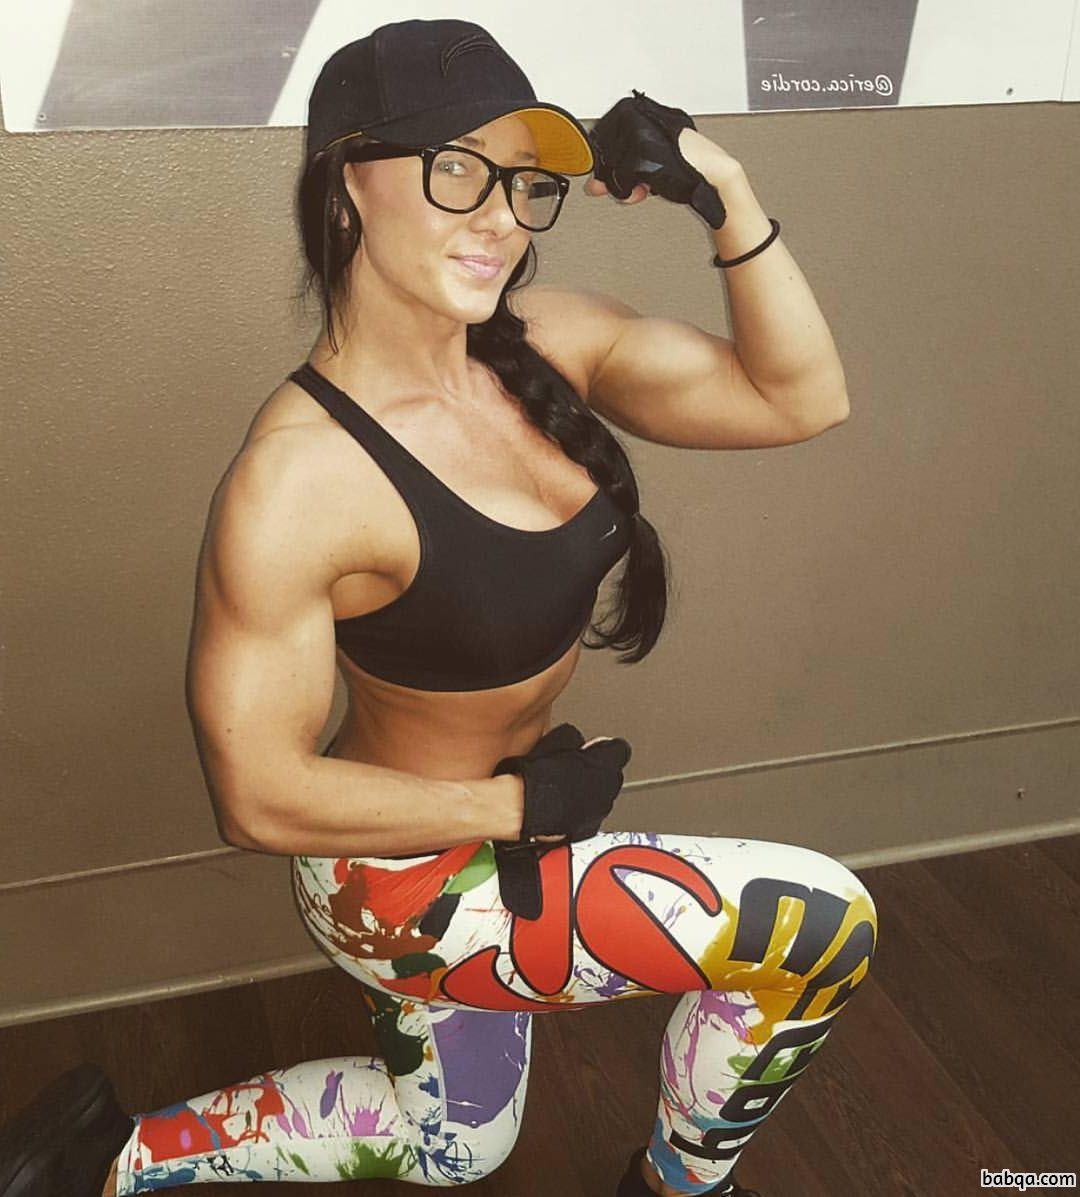 perfect female with fitness body and toned legs picture from reddit